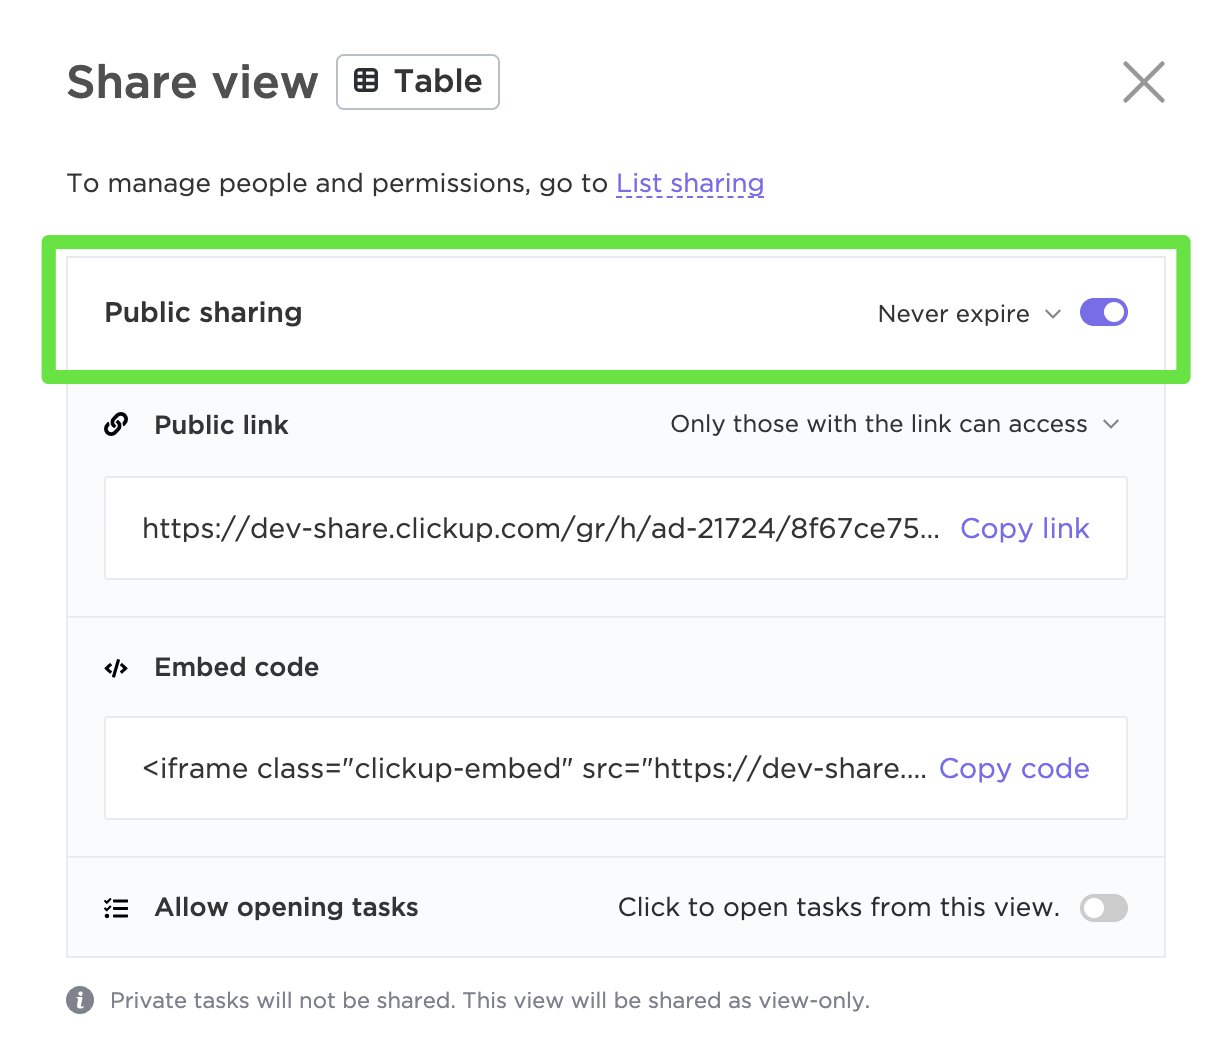 Publicly share Table view with the public sharing link